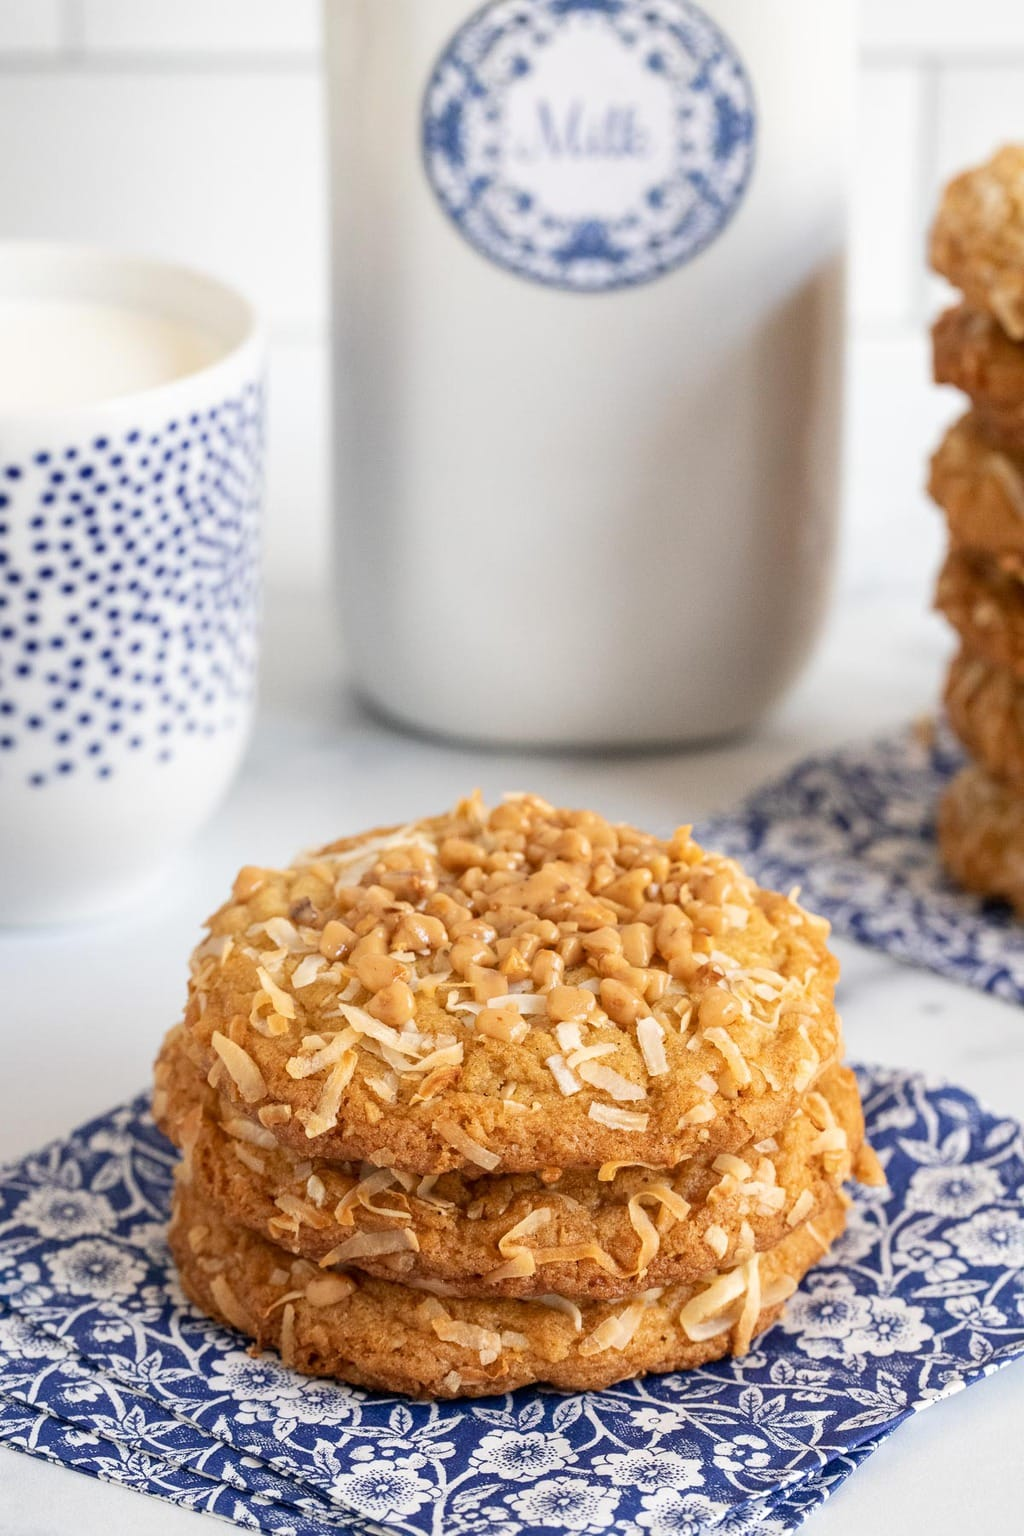 Vertical photo of a small stack of Crispy Chewy Carolina Coconut Cookies on blue and white patterned napkins with glasses and a bottle of milk in the background.